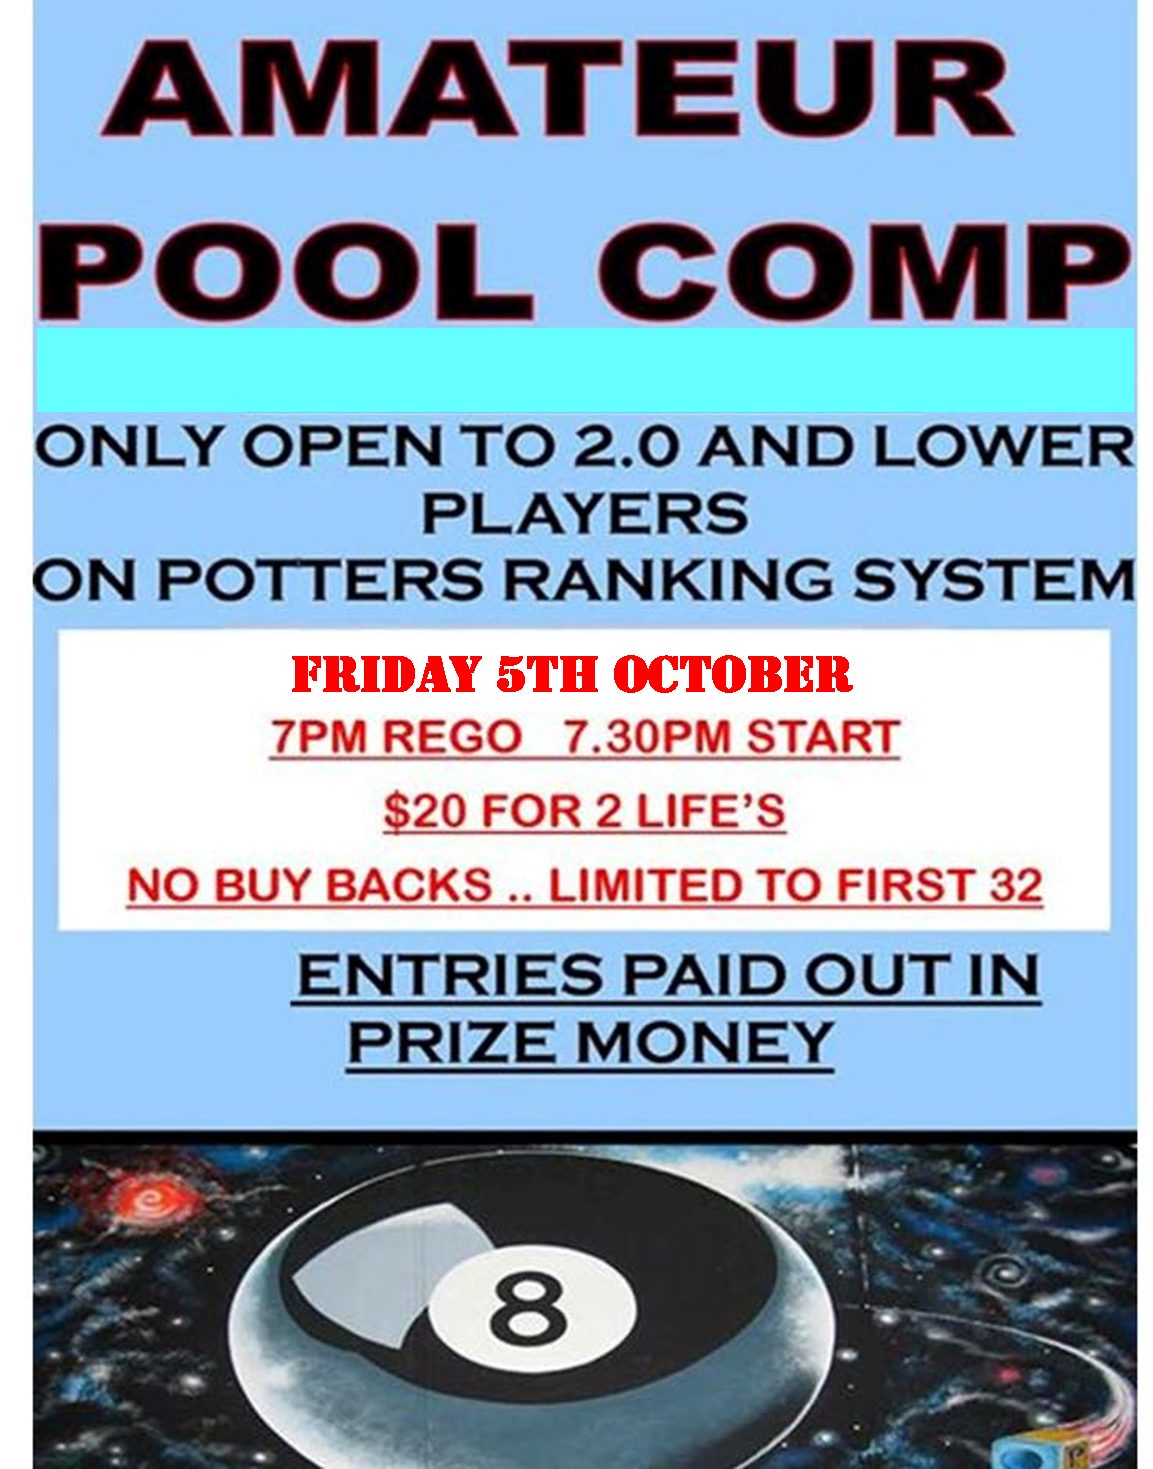 Potters Friday night comp